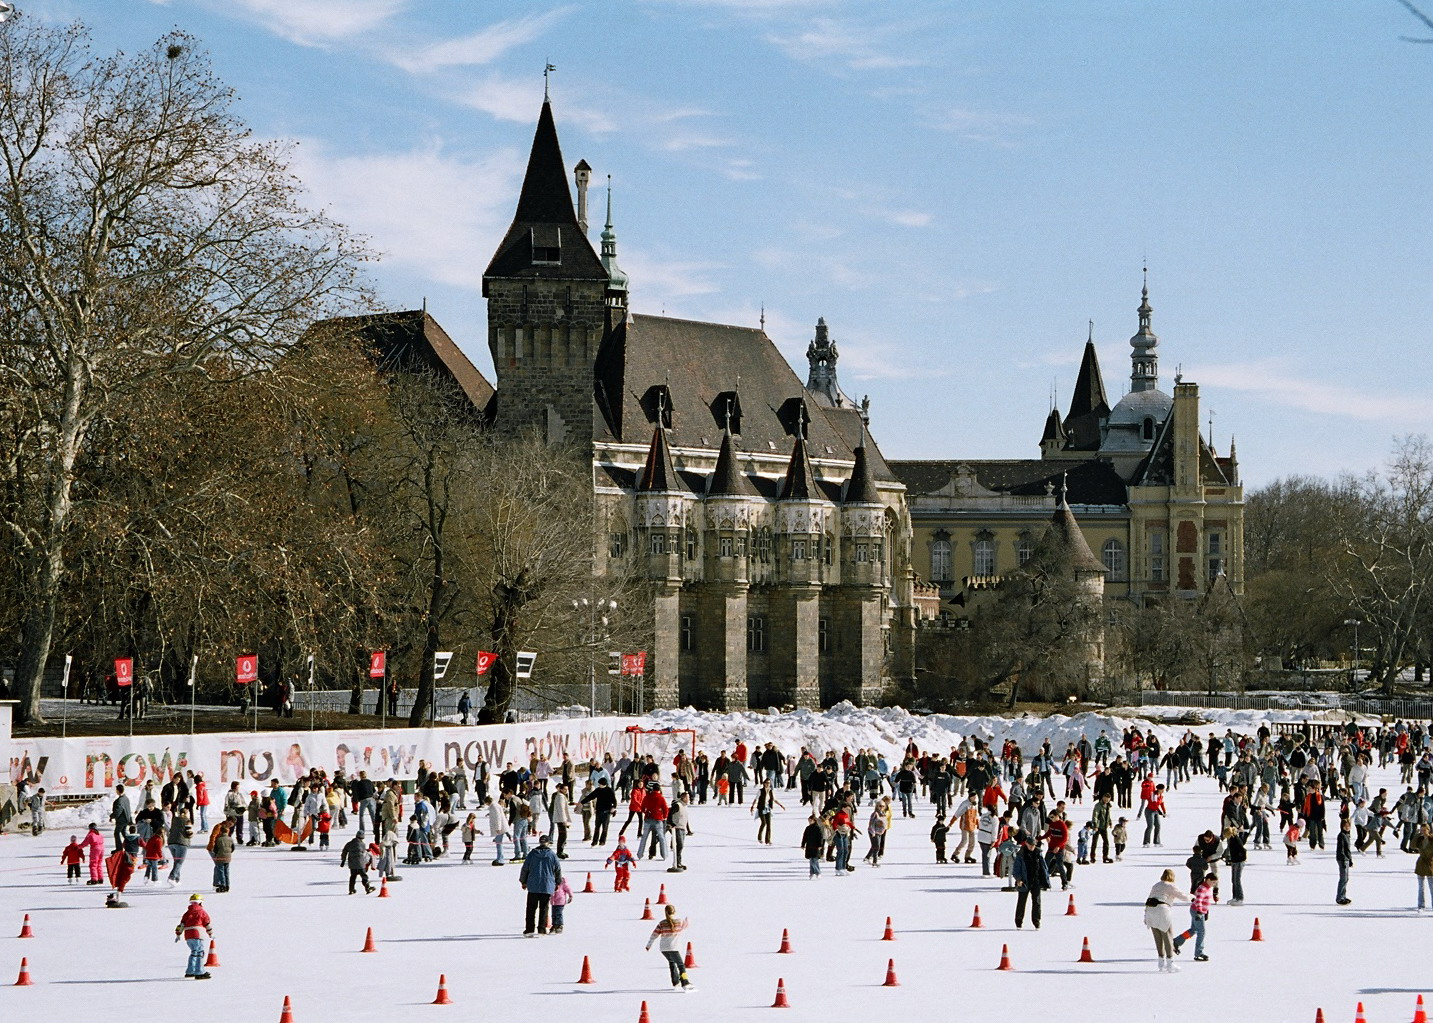 City Park Ice Rink and Boating Lake Budapest